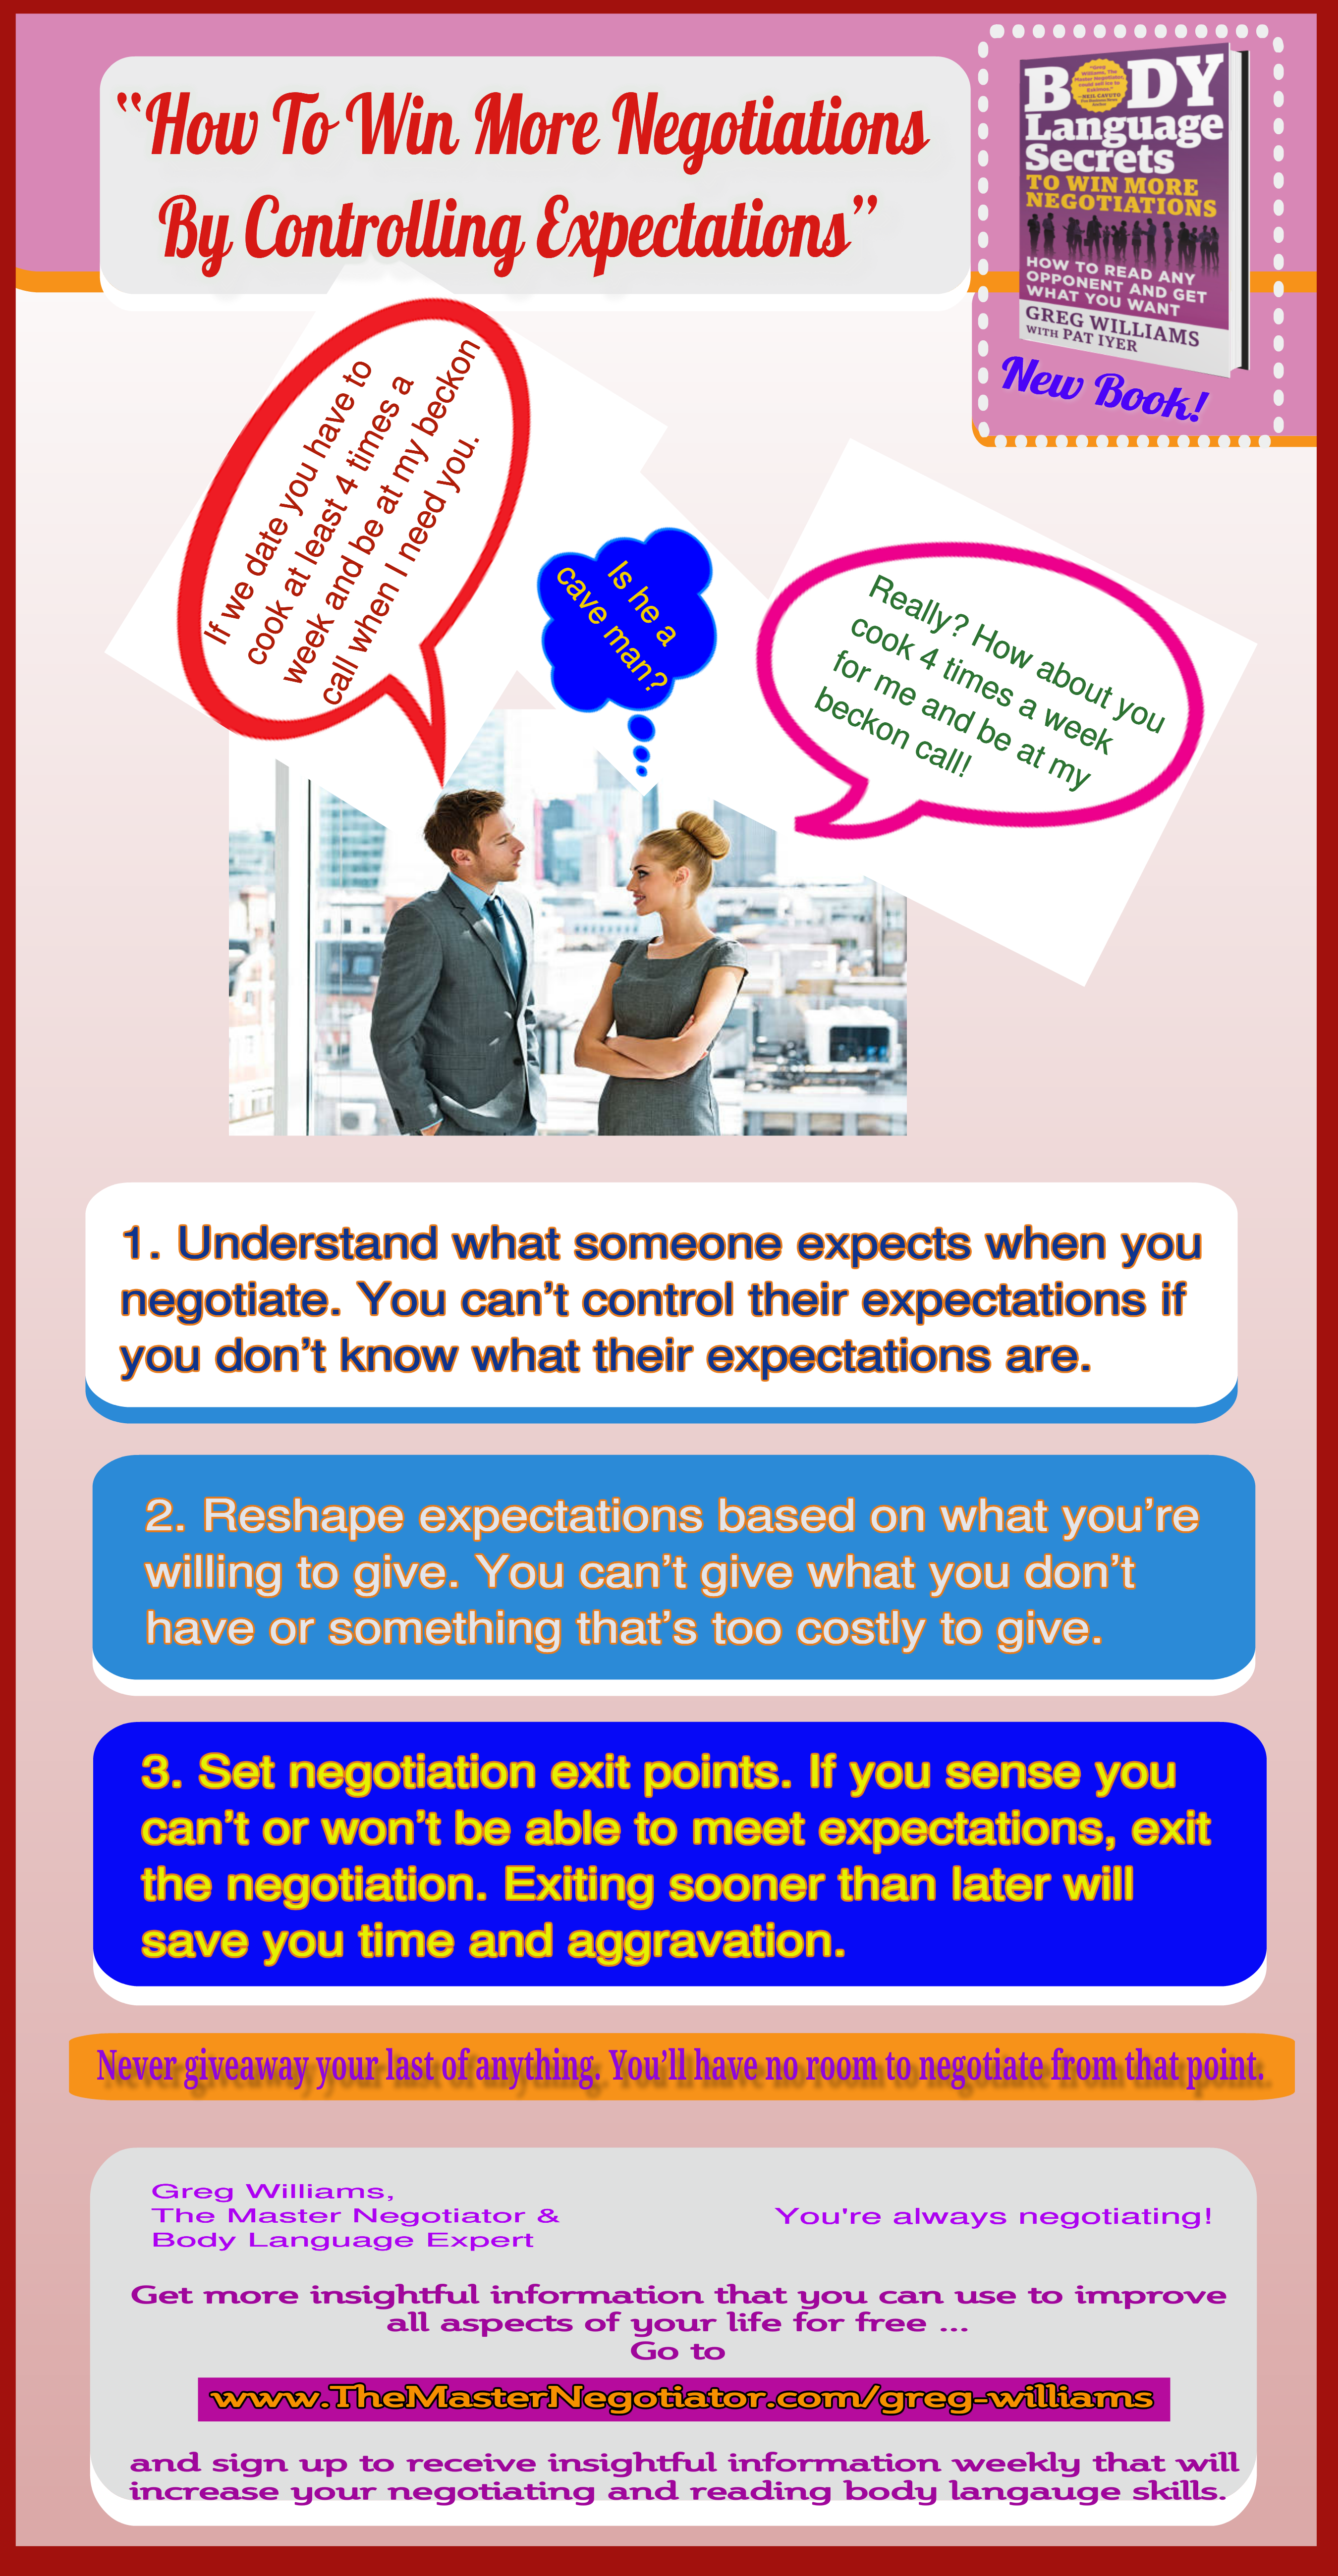 How To Win More Negotiations By Controlling Expectations